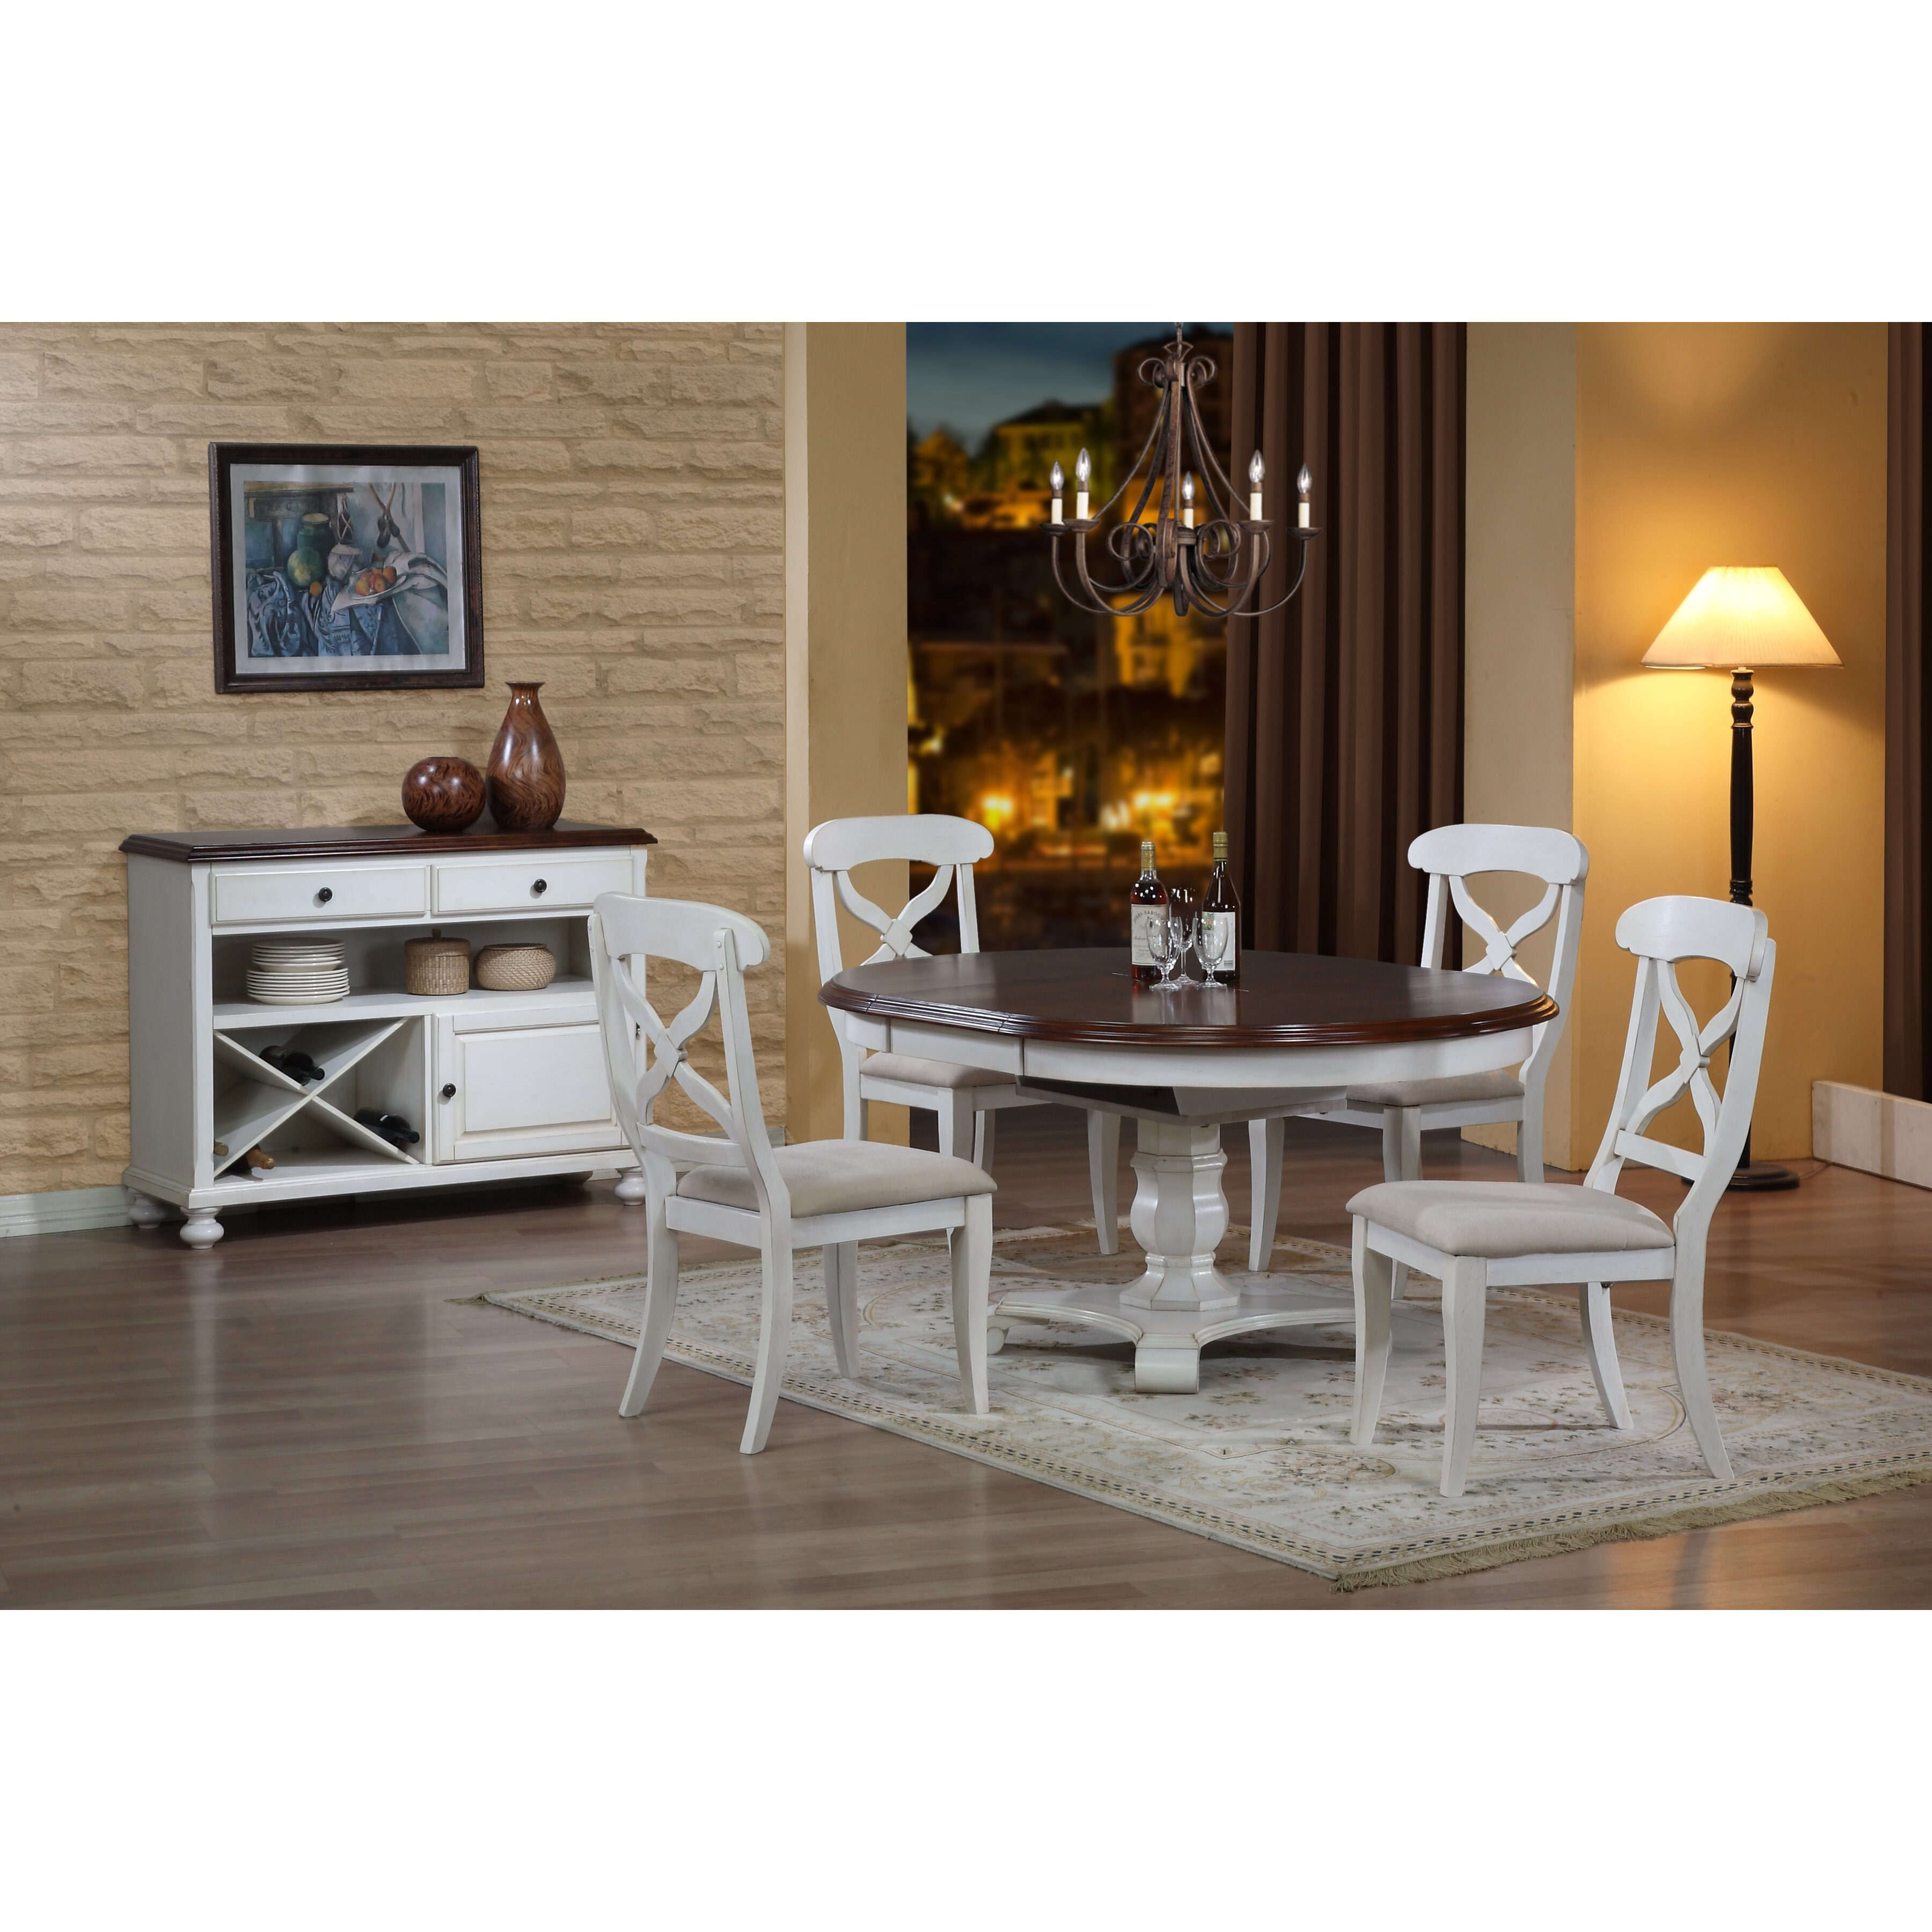 5 Piece KitchenDining Room Sets Youll LoveWayfair